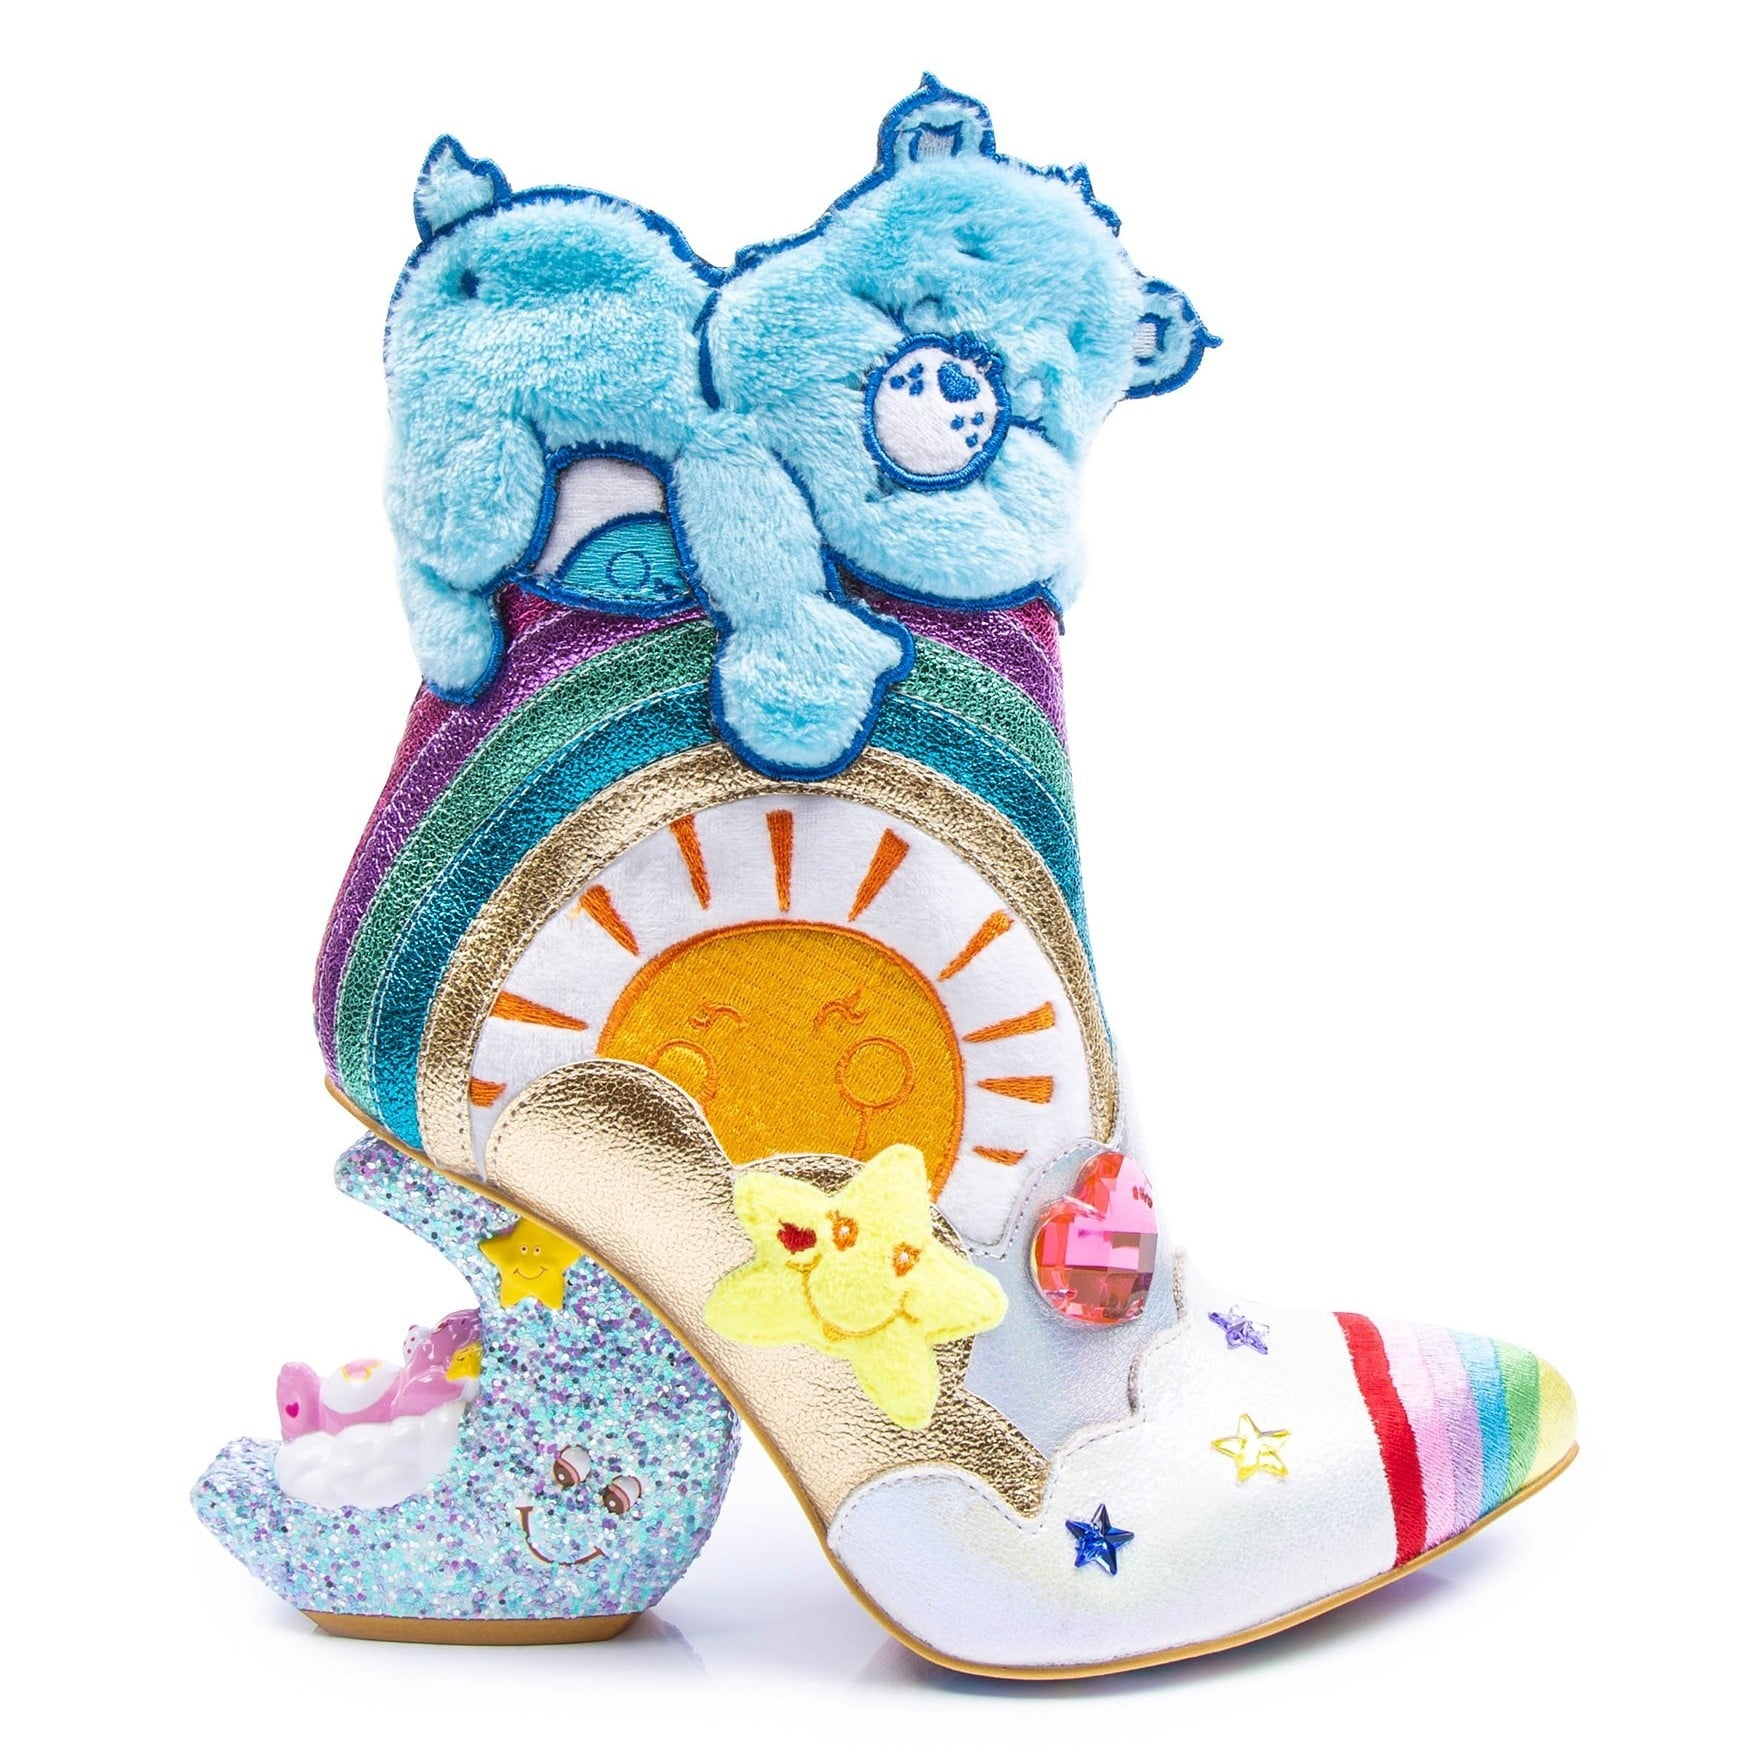 Irregular Choice Care Bears collection includes outrageous furry shoes 19